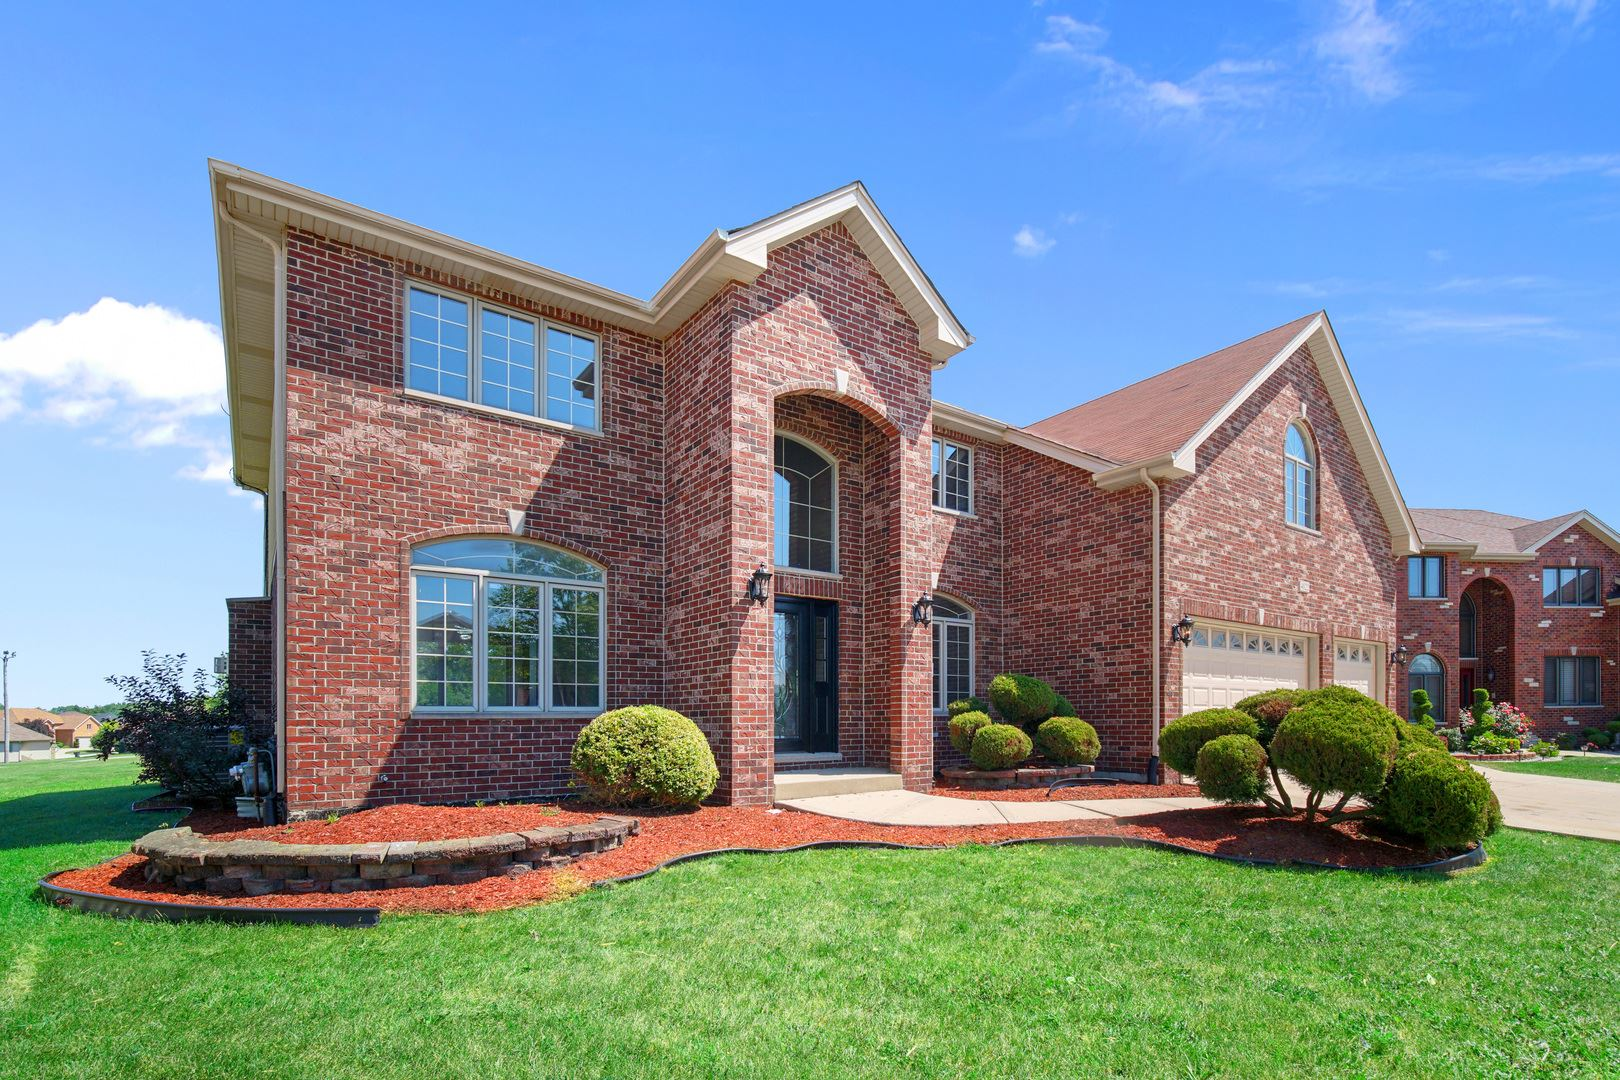 4822 CANTERBURY Place, Country Club Hills, IL 60478 - #: 10803685